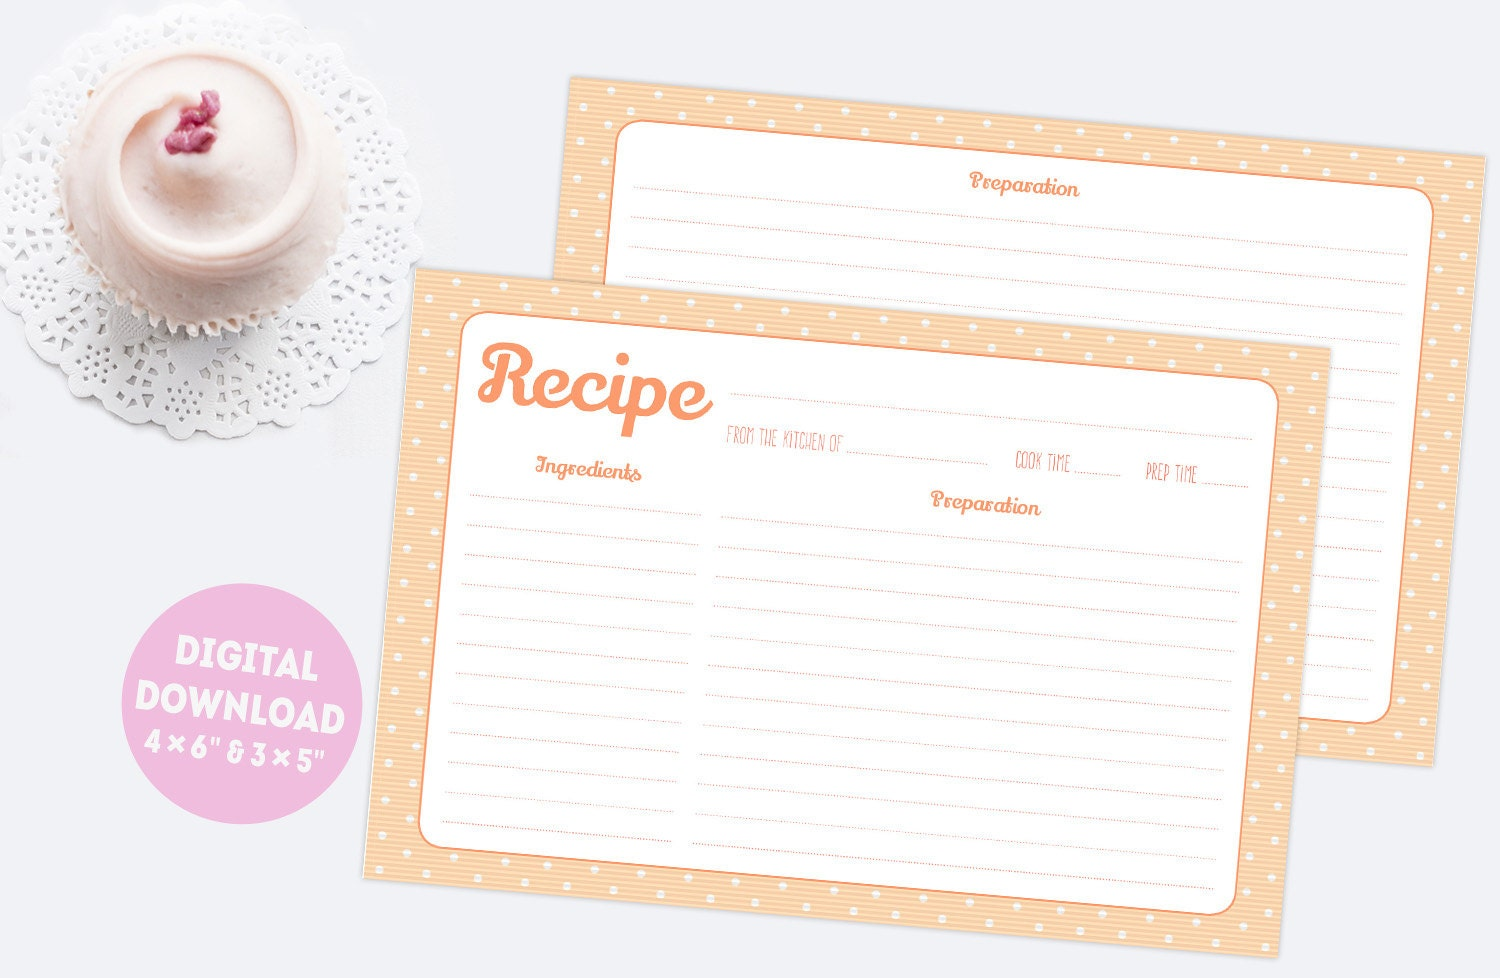 It is an image of Gratifying Cute Recipe Cards